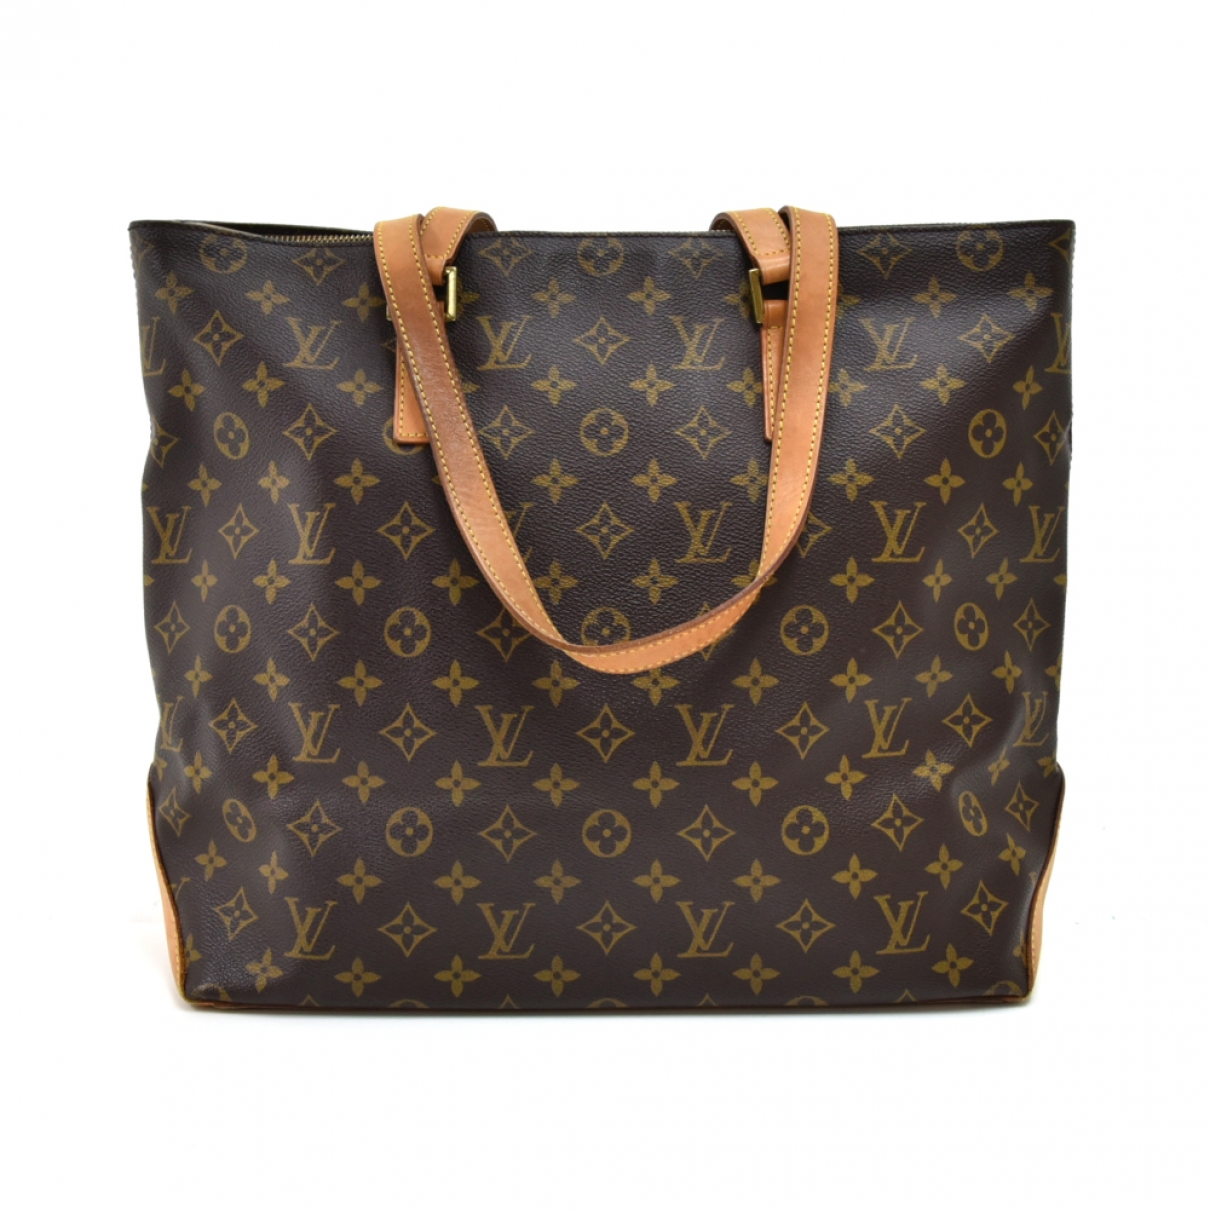 Louis Vuitton Mezzo  Brown Cloth handbag for Women \N